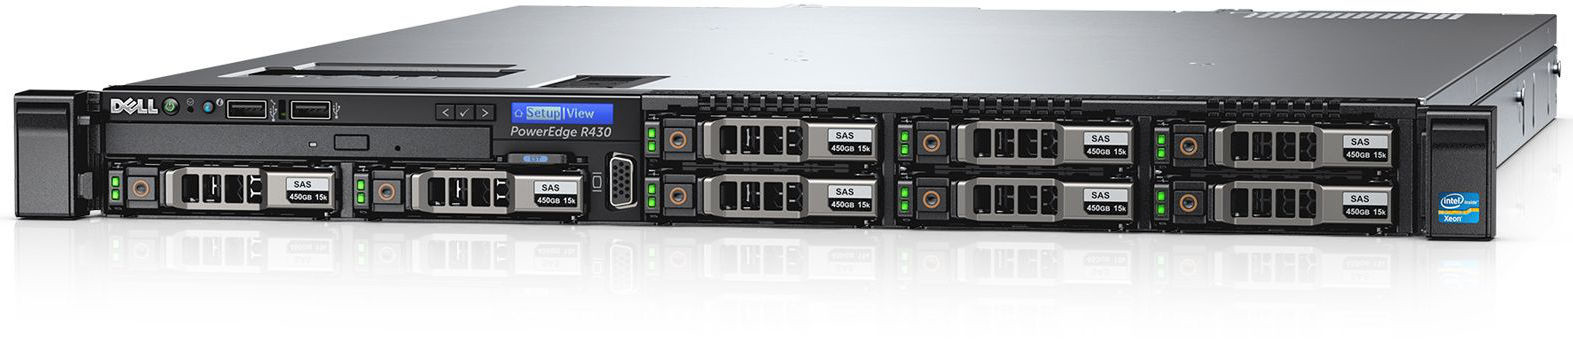 Server Dell PowerEdge R430 Procesor Intel Xeon E5-2620v3 2x1TB 8GB RAM Dual Hot Plug 550W